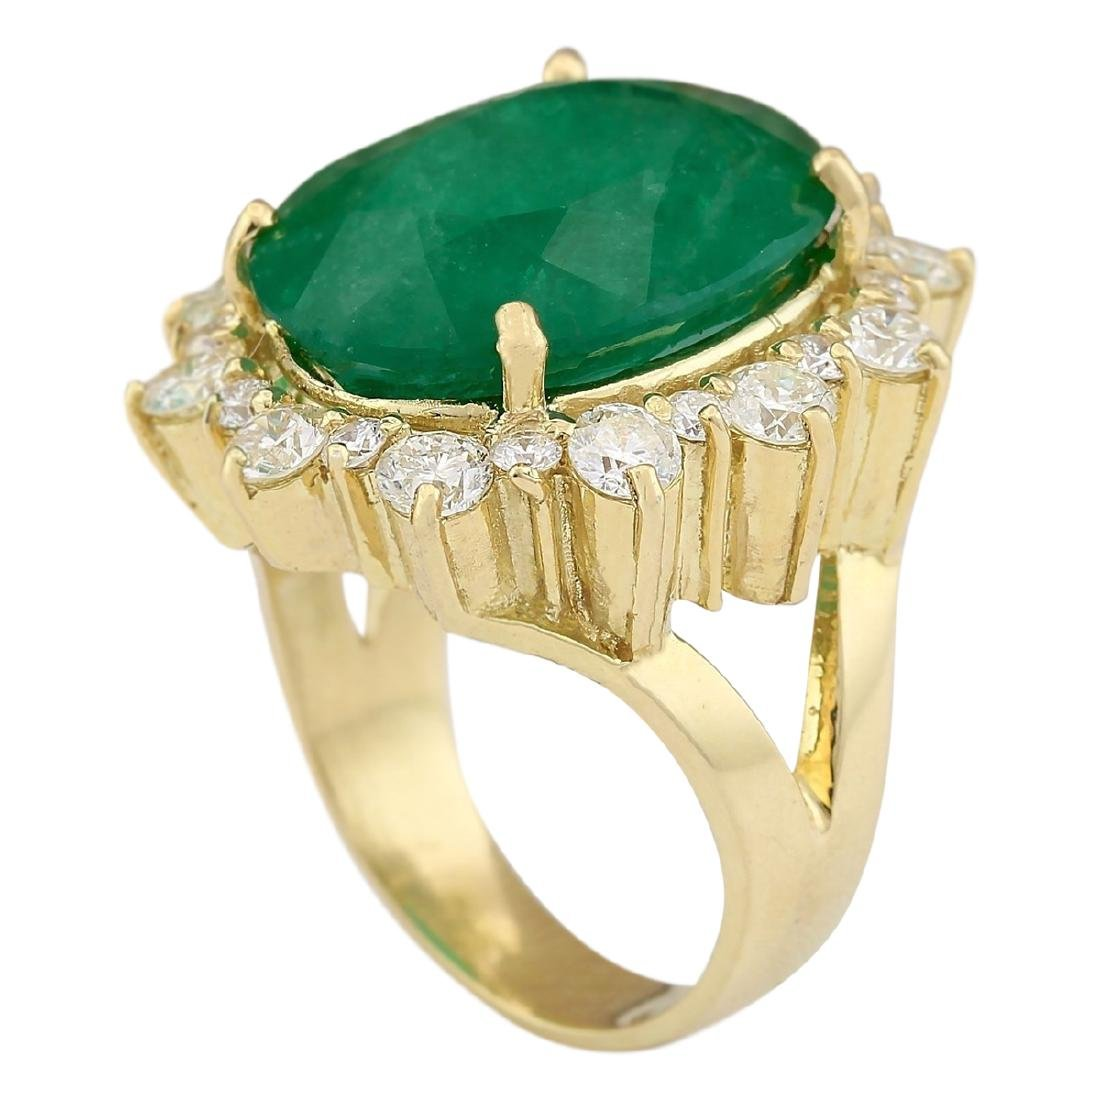 18.59 CTW Natural Emerald And Diamond Ring In 18K - 3